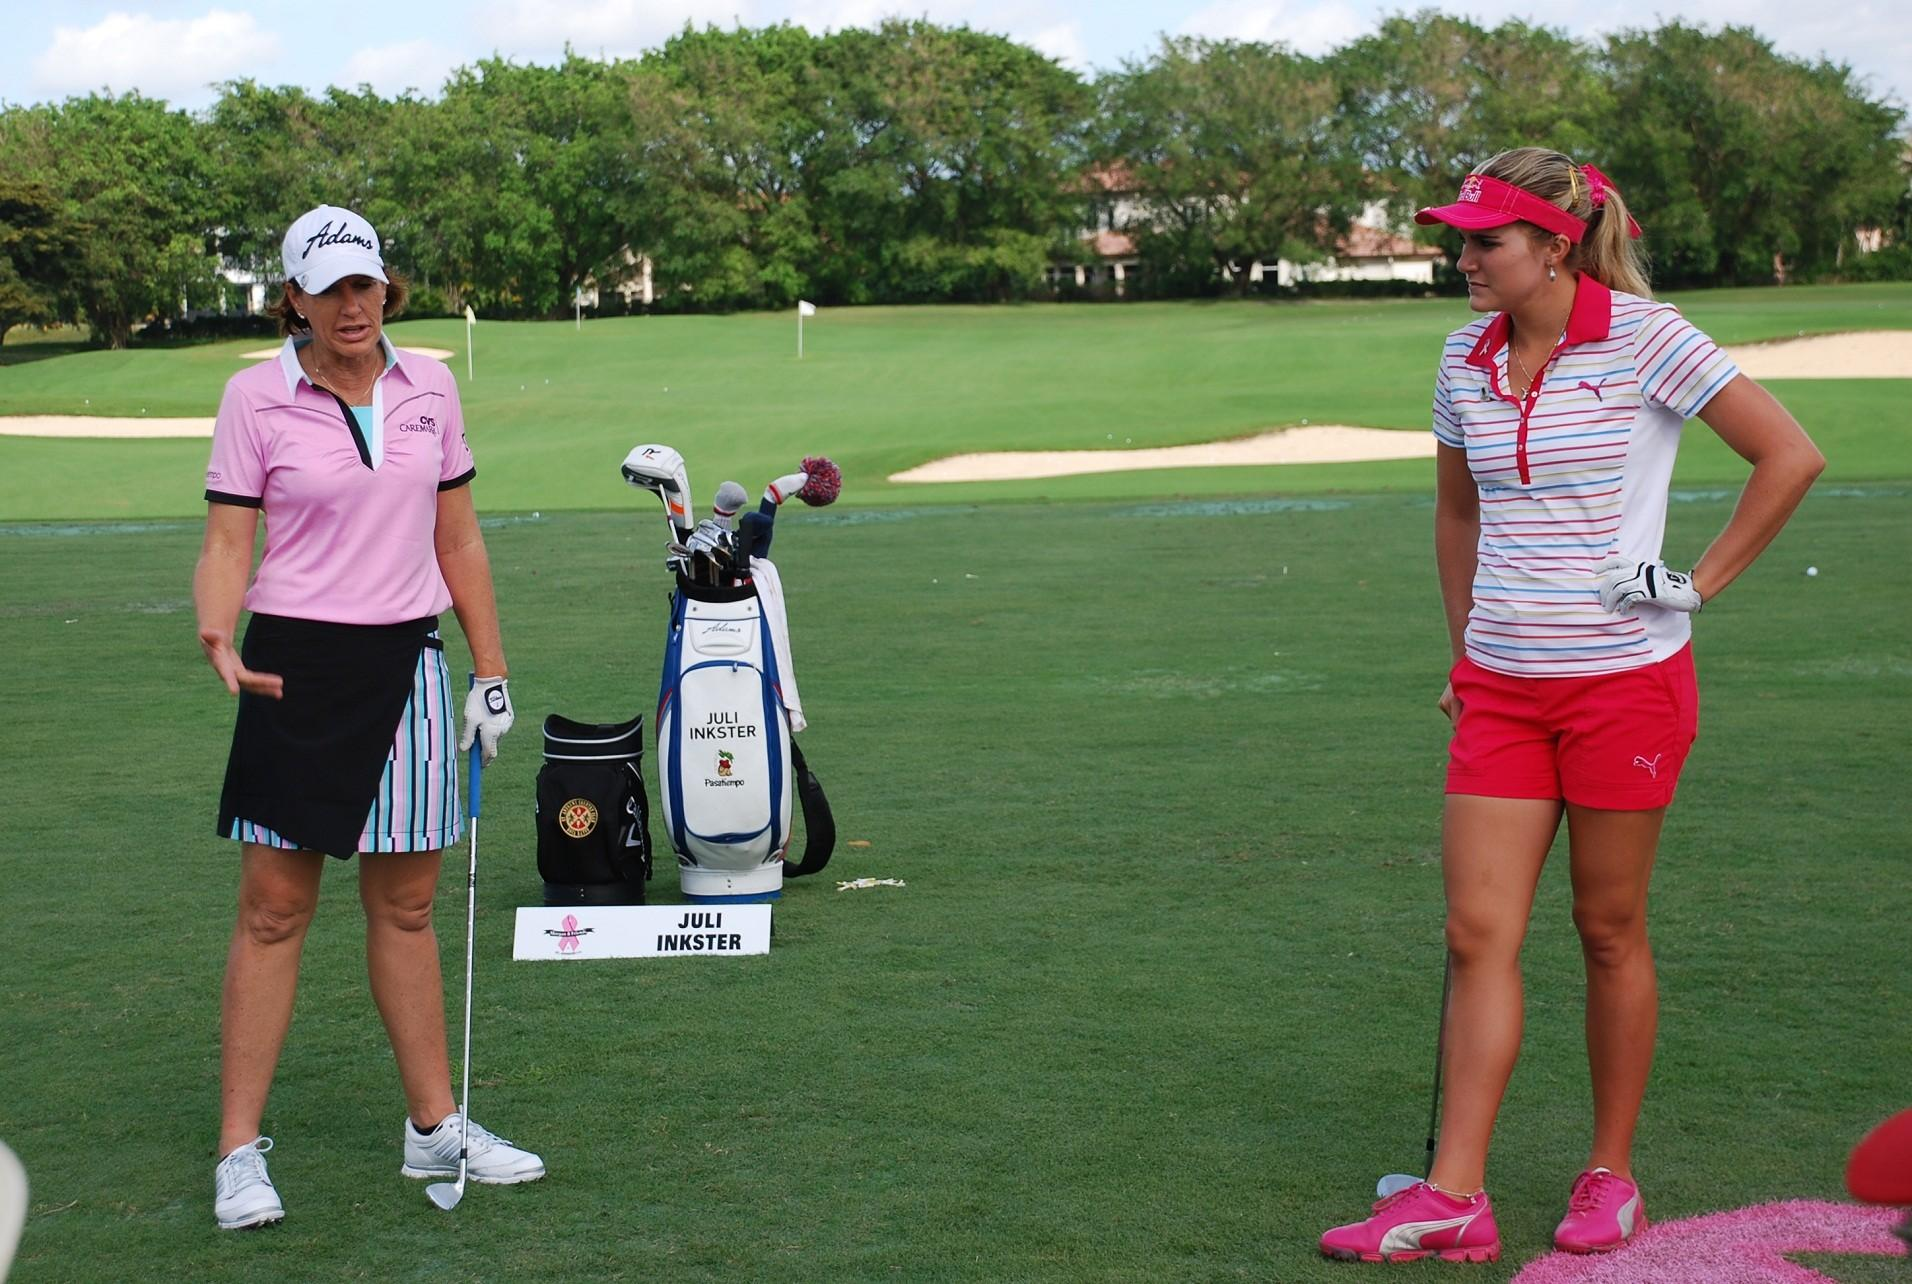 Juli Inkster, left, and Lexi Thompson talk about how they warm up before a round of golf during a clinic at the Morgan & Friends Tournament at St. Andrew's Country Club in Boca Raton.